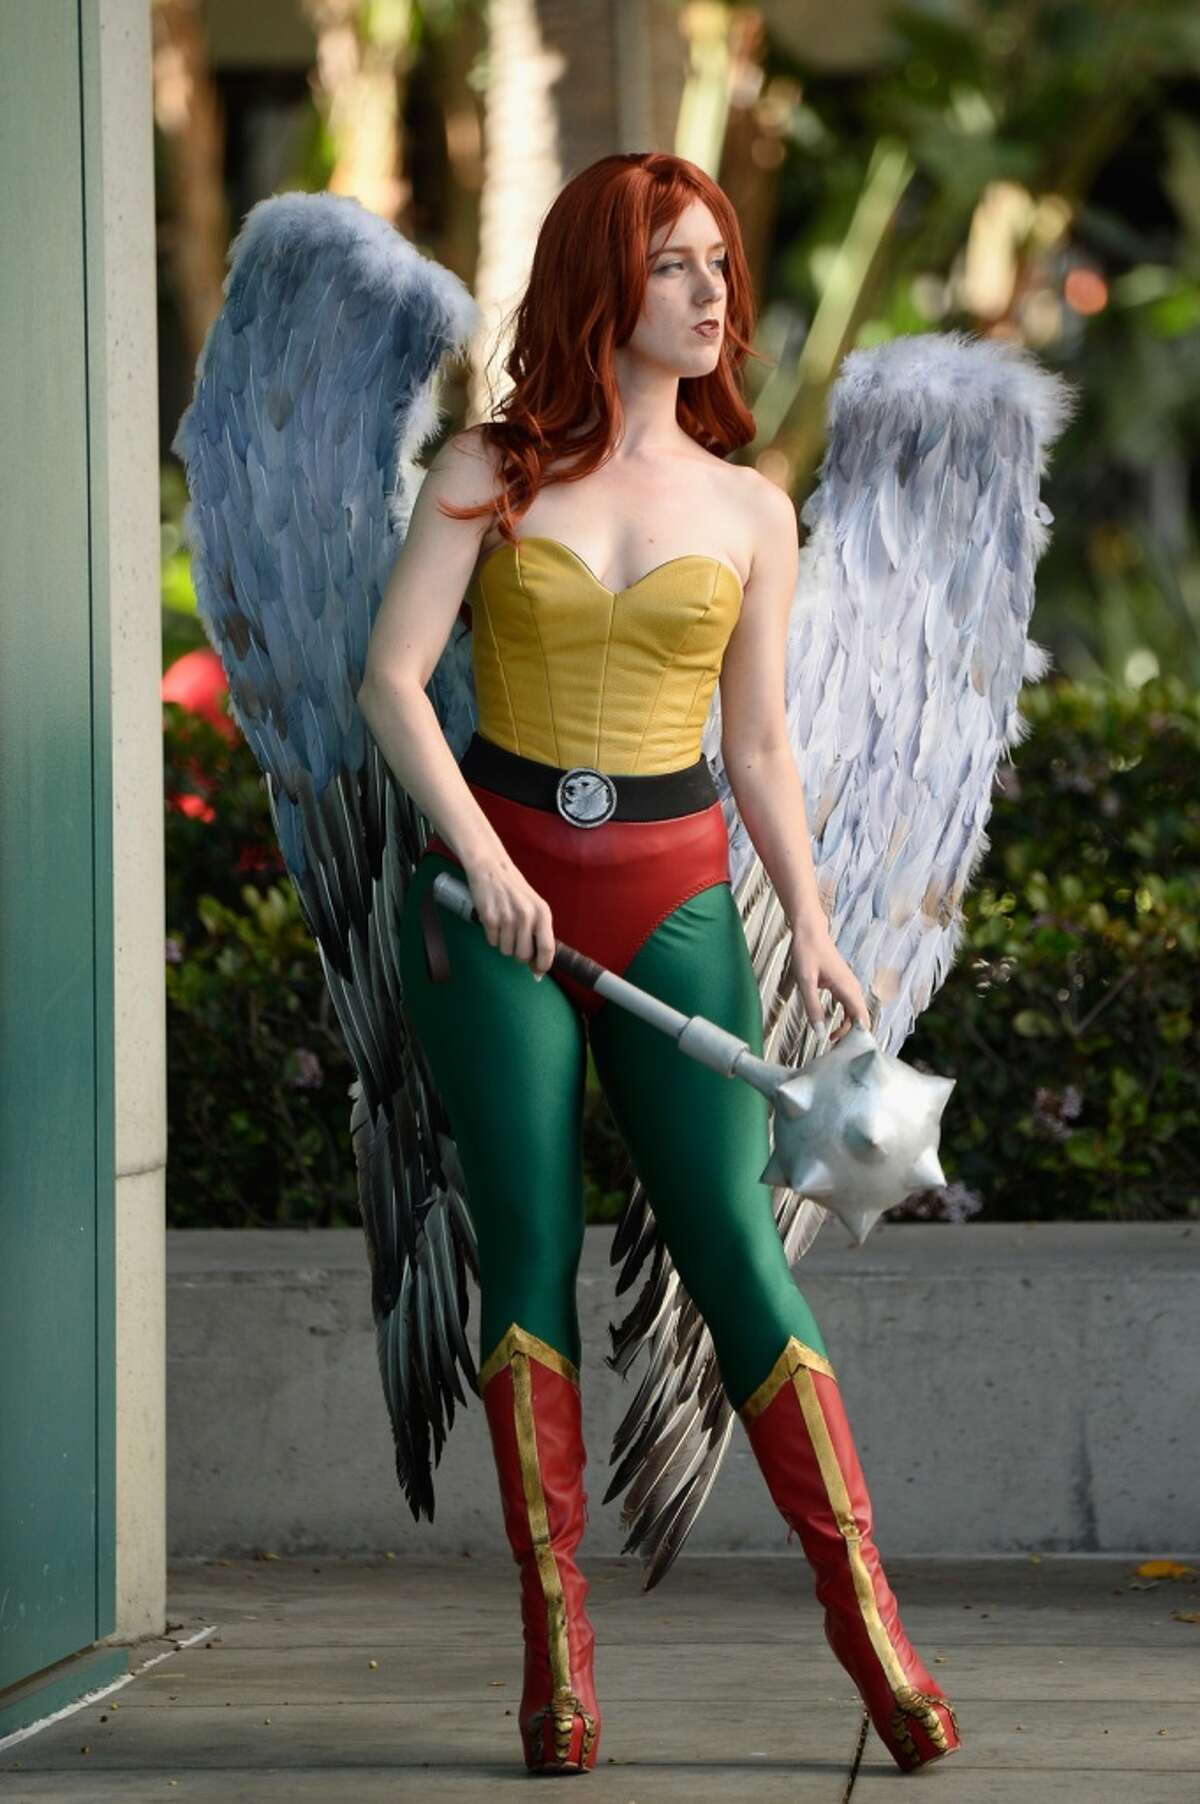 When you do things right, there is a happy balance between costume accuracy and sex appeal, like this Hawkwoman...